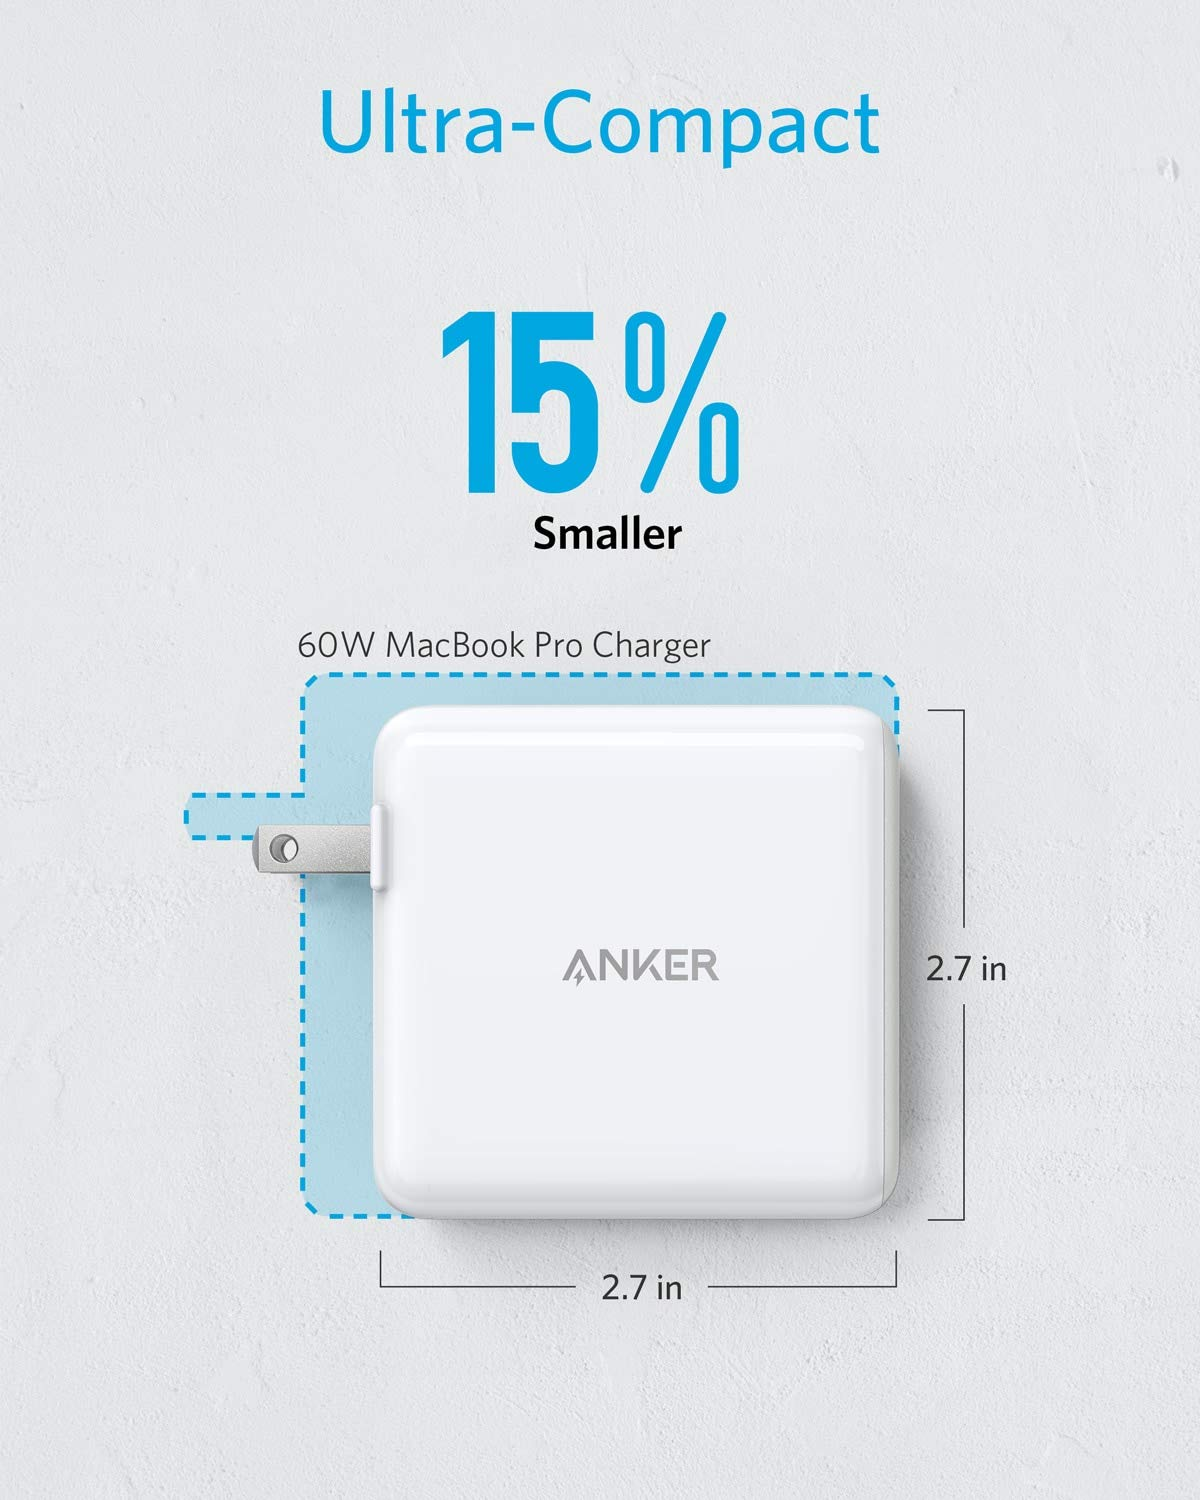 Anker 60W 2-Port USB C Charger, PowerPort Atom PD 2 [GAN Tech] Compact Foldable Wall Charger, Power Delivery for MacBook Pro/Air, iPad Pro, iPhone 11 ...